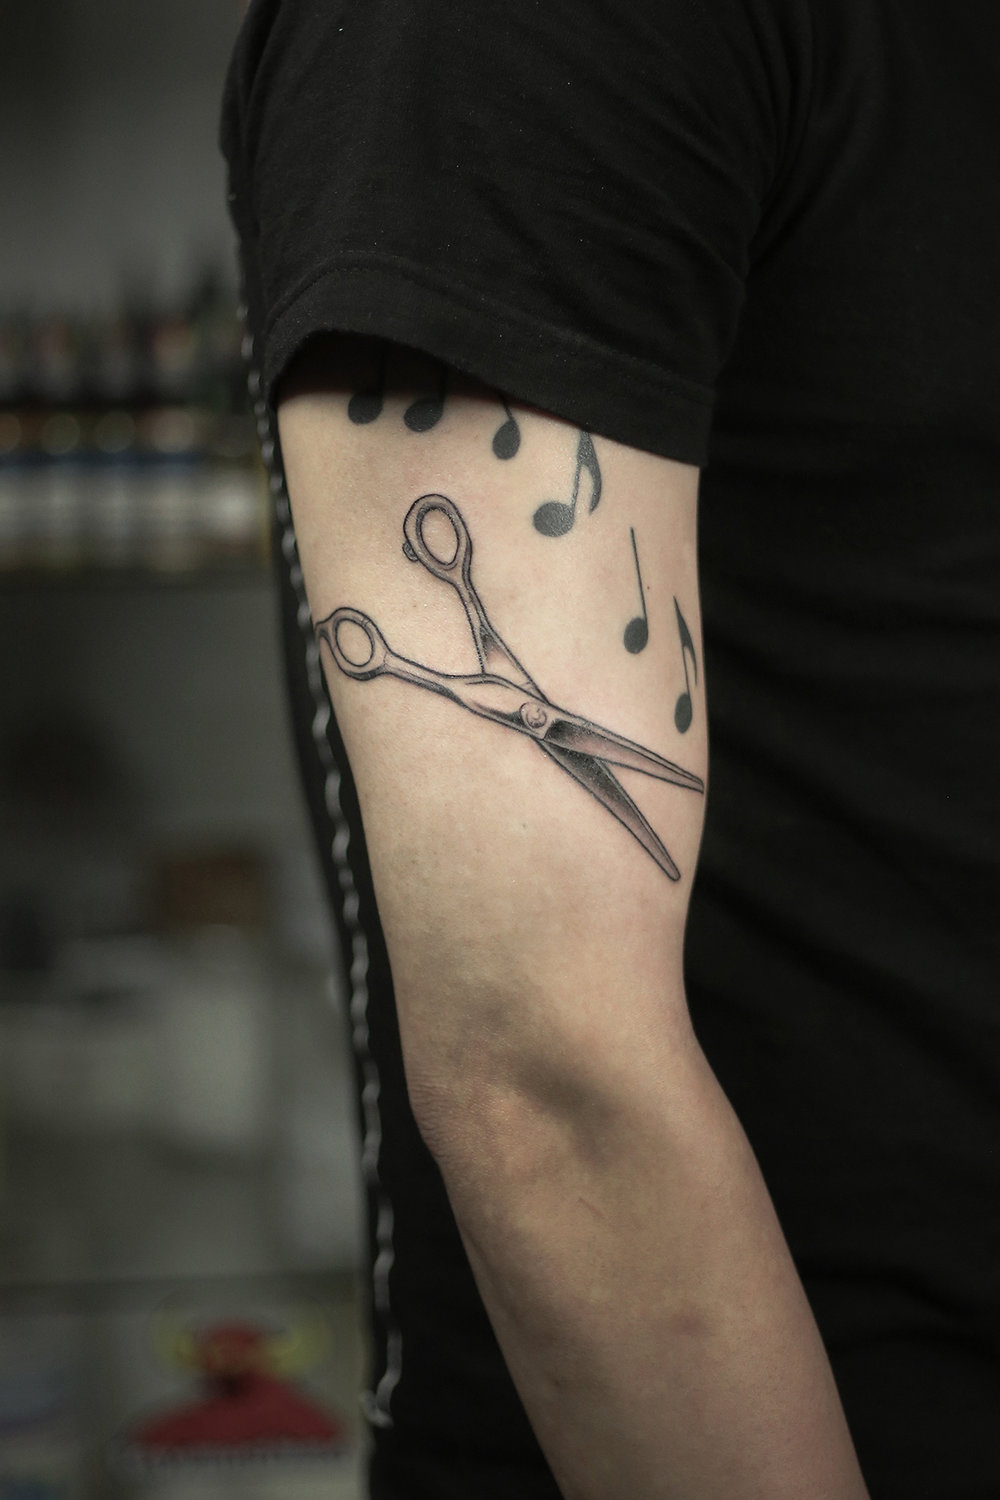 2016-fridays-tattoo-hong-kong-felix-barber-scissors.jpg